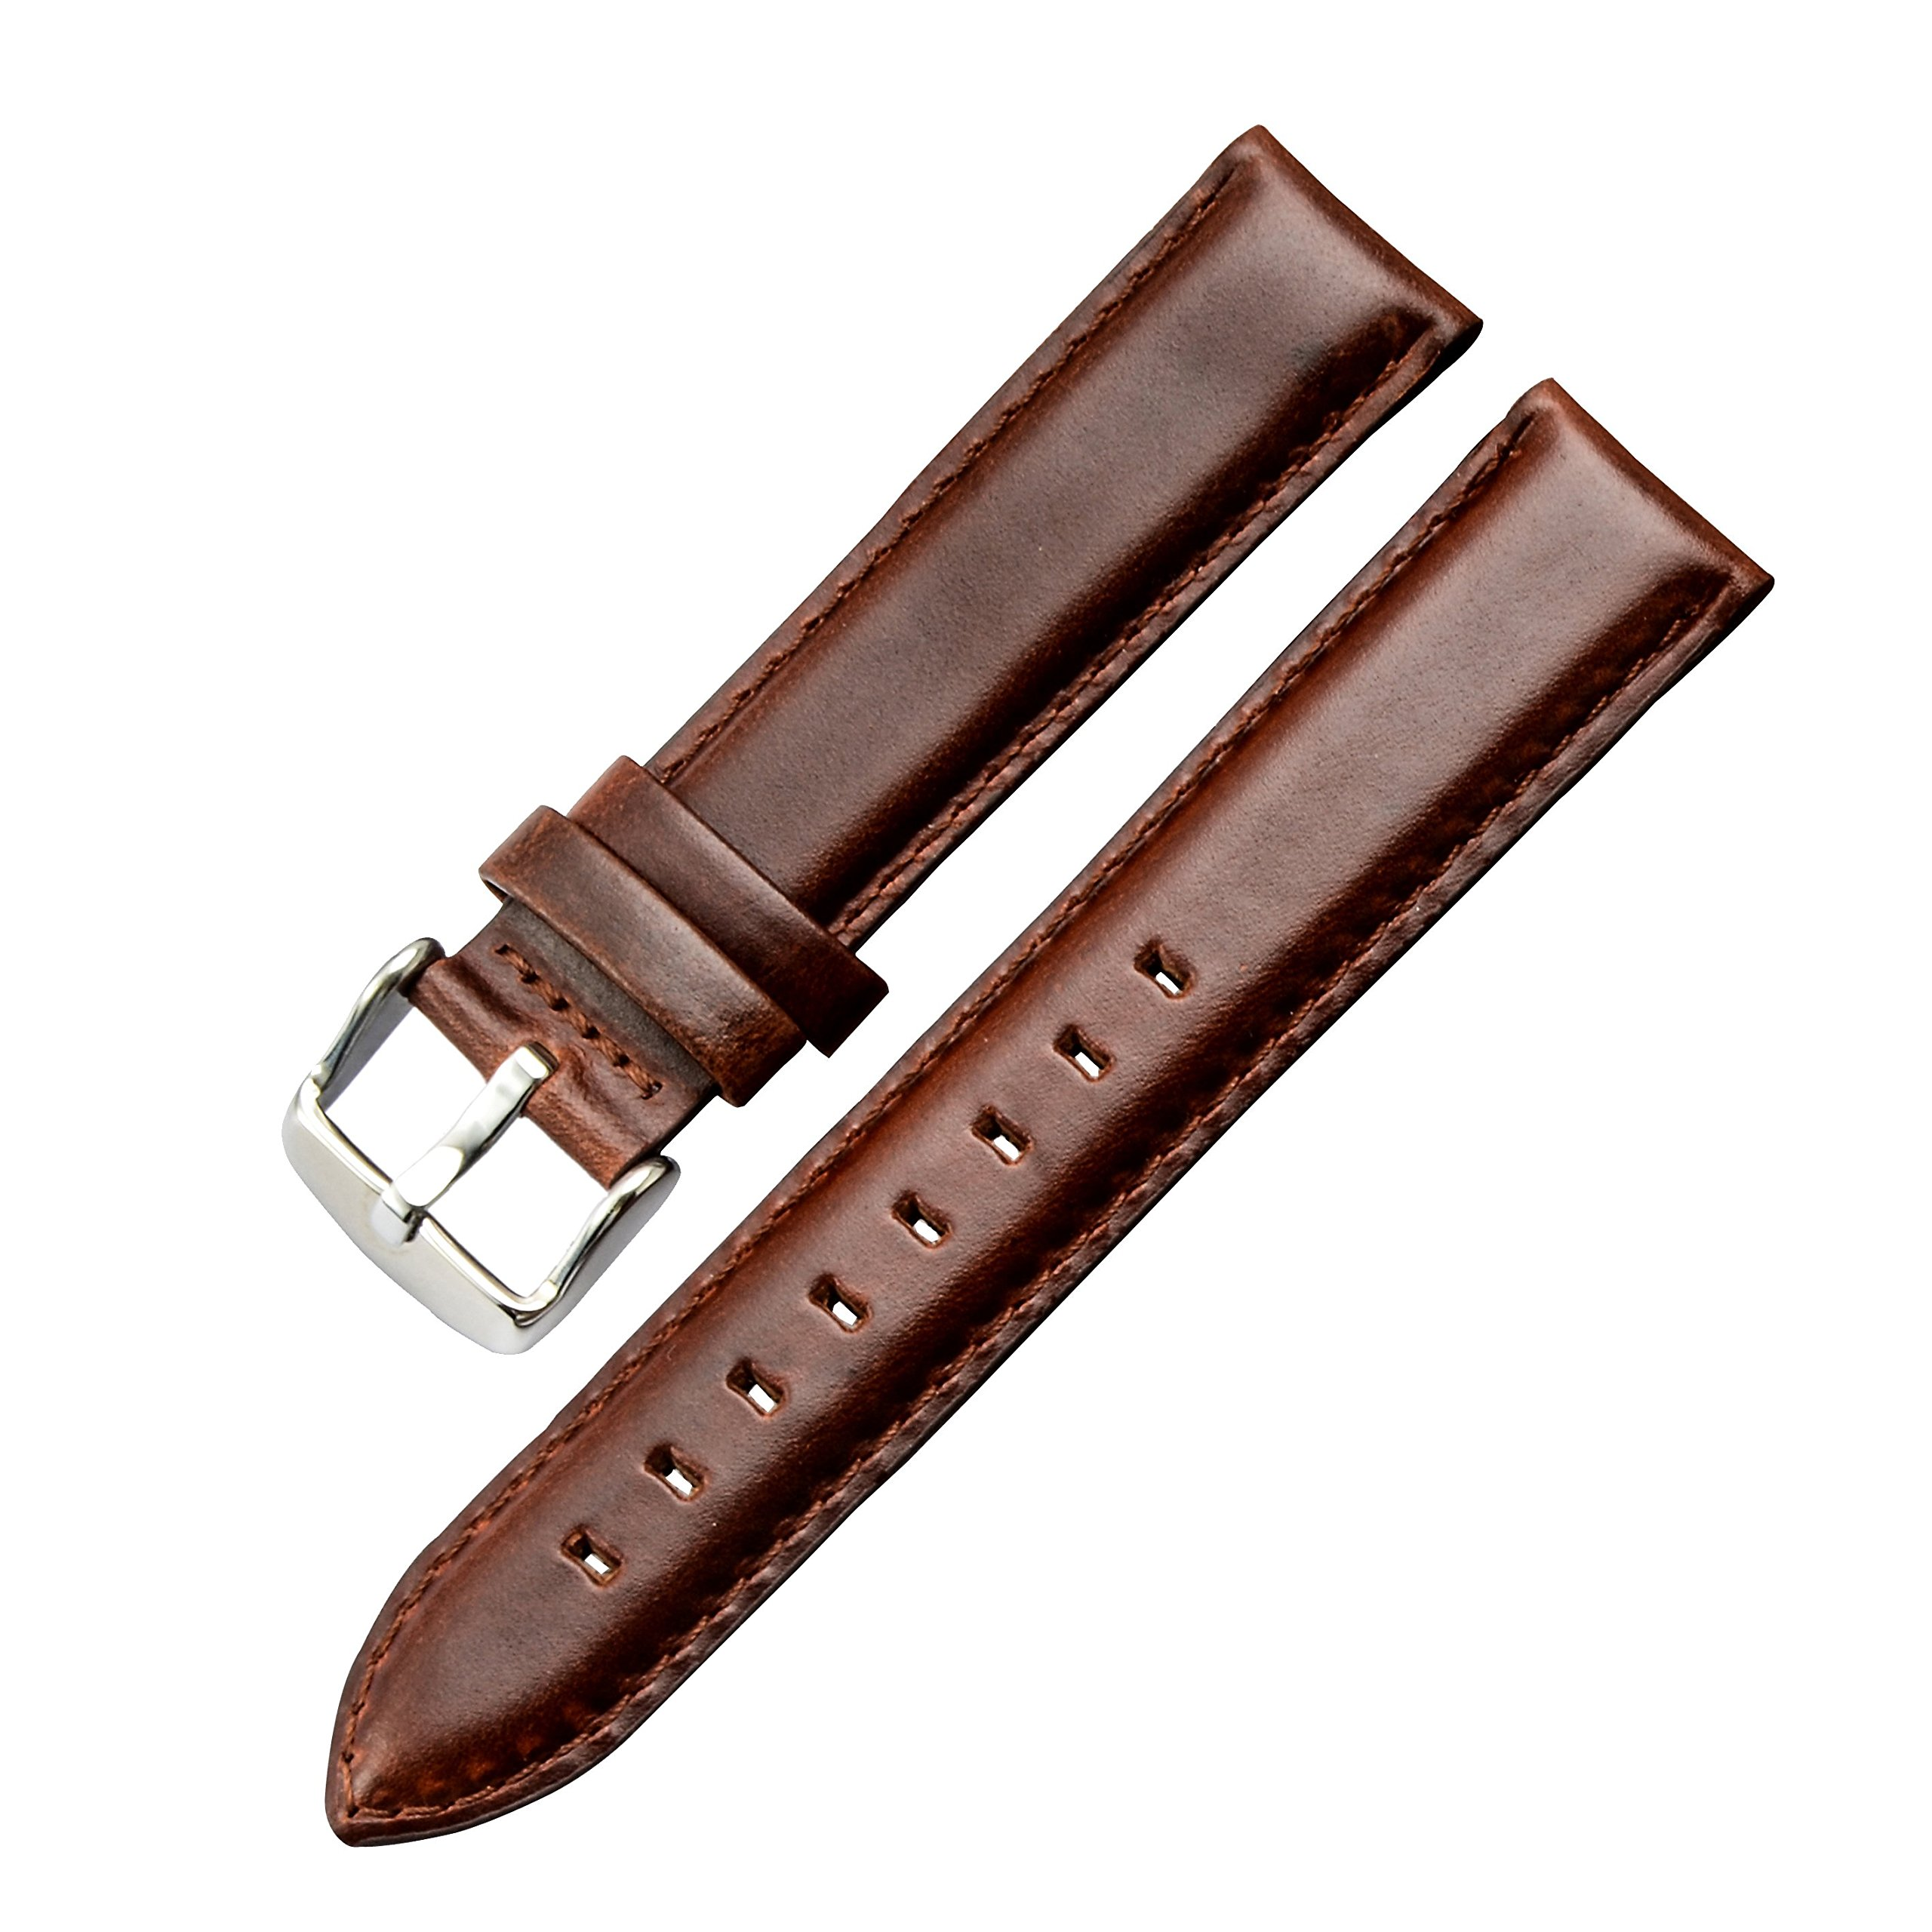 13mm Business Leather Watch Bands Replacement Straps Medium Padded Flat Design Brown Genuine Calfskin